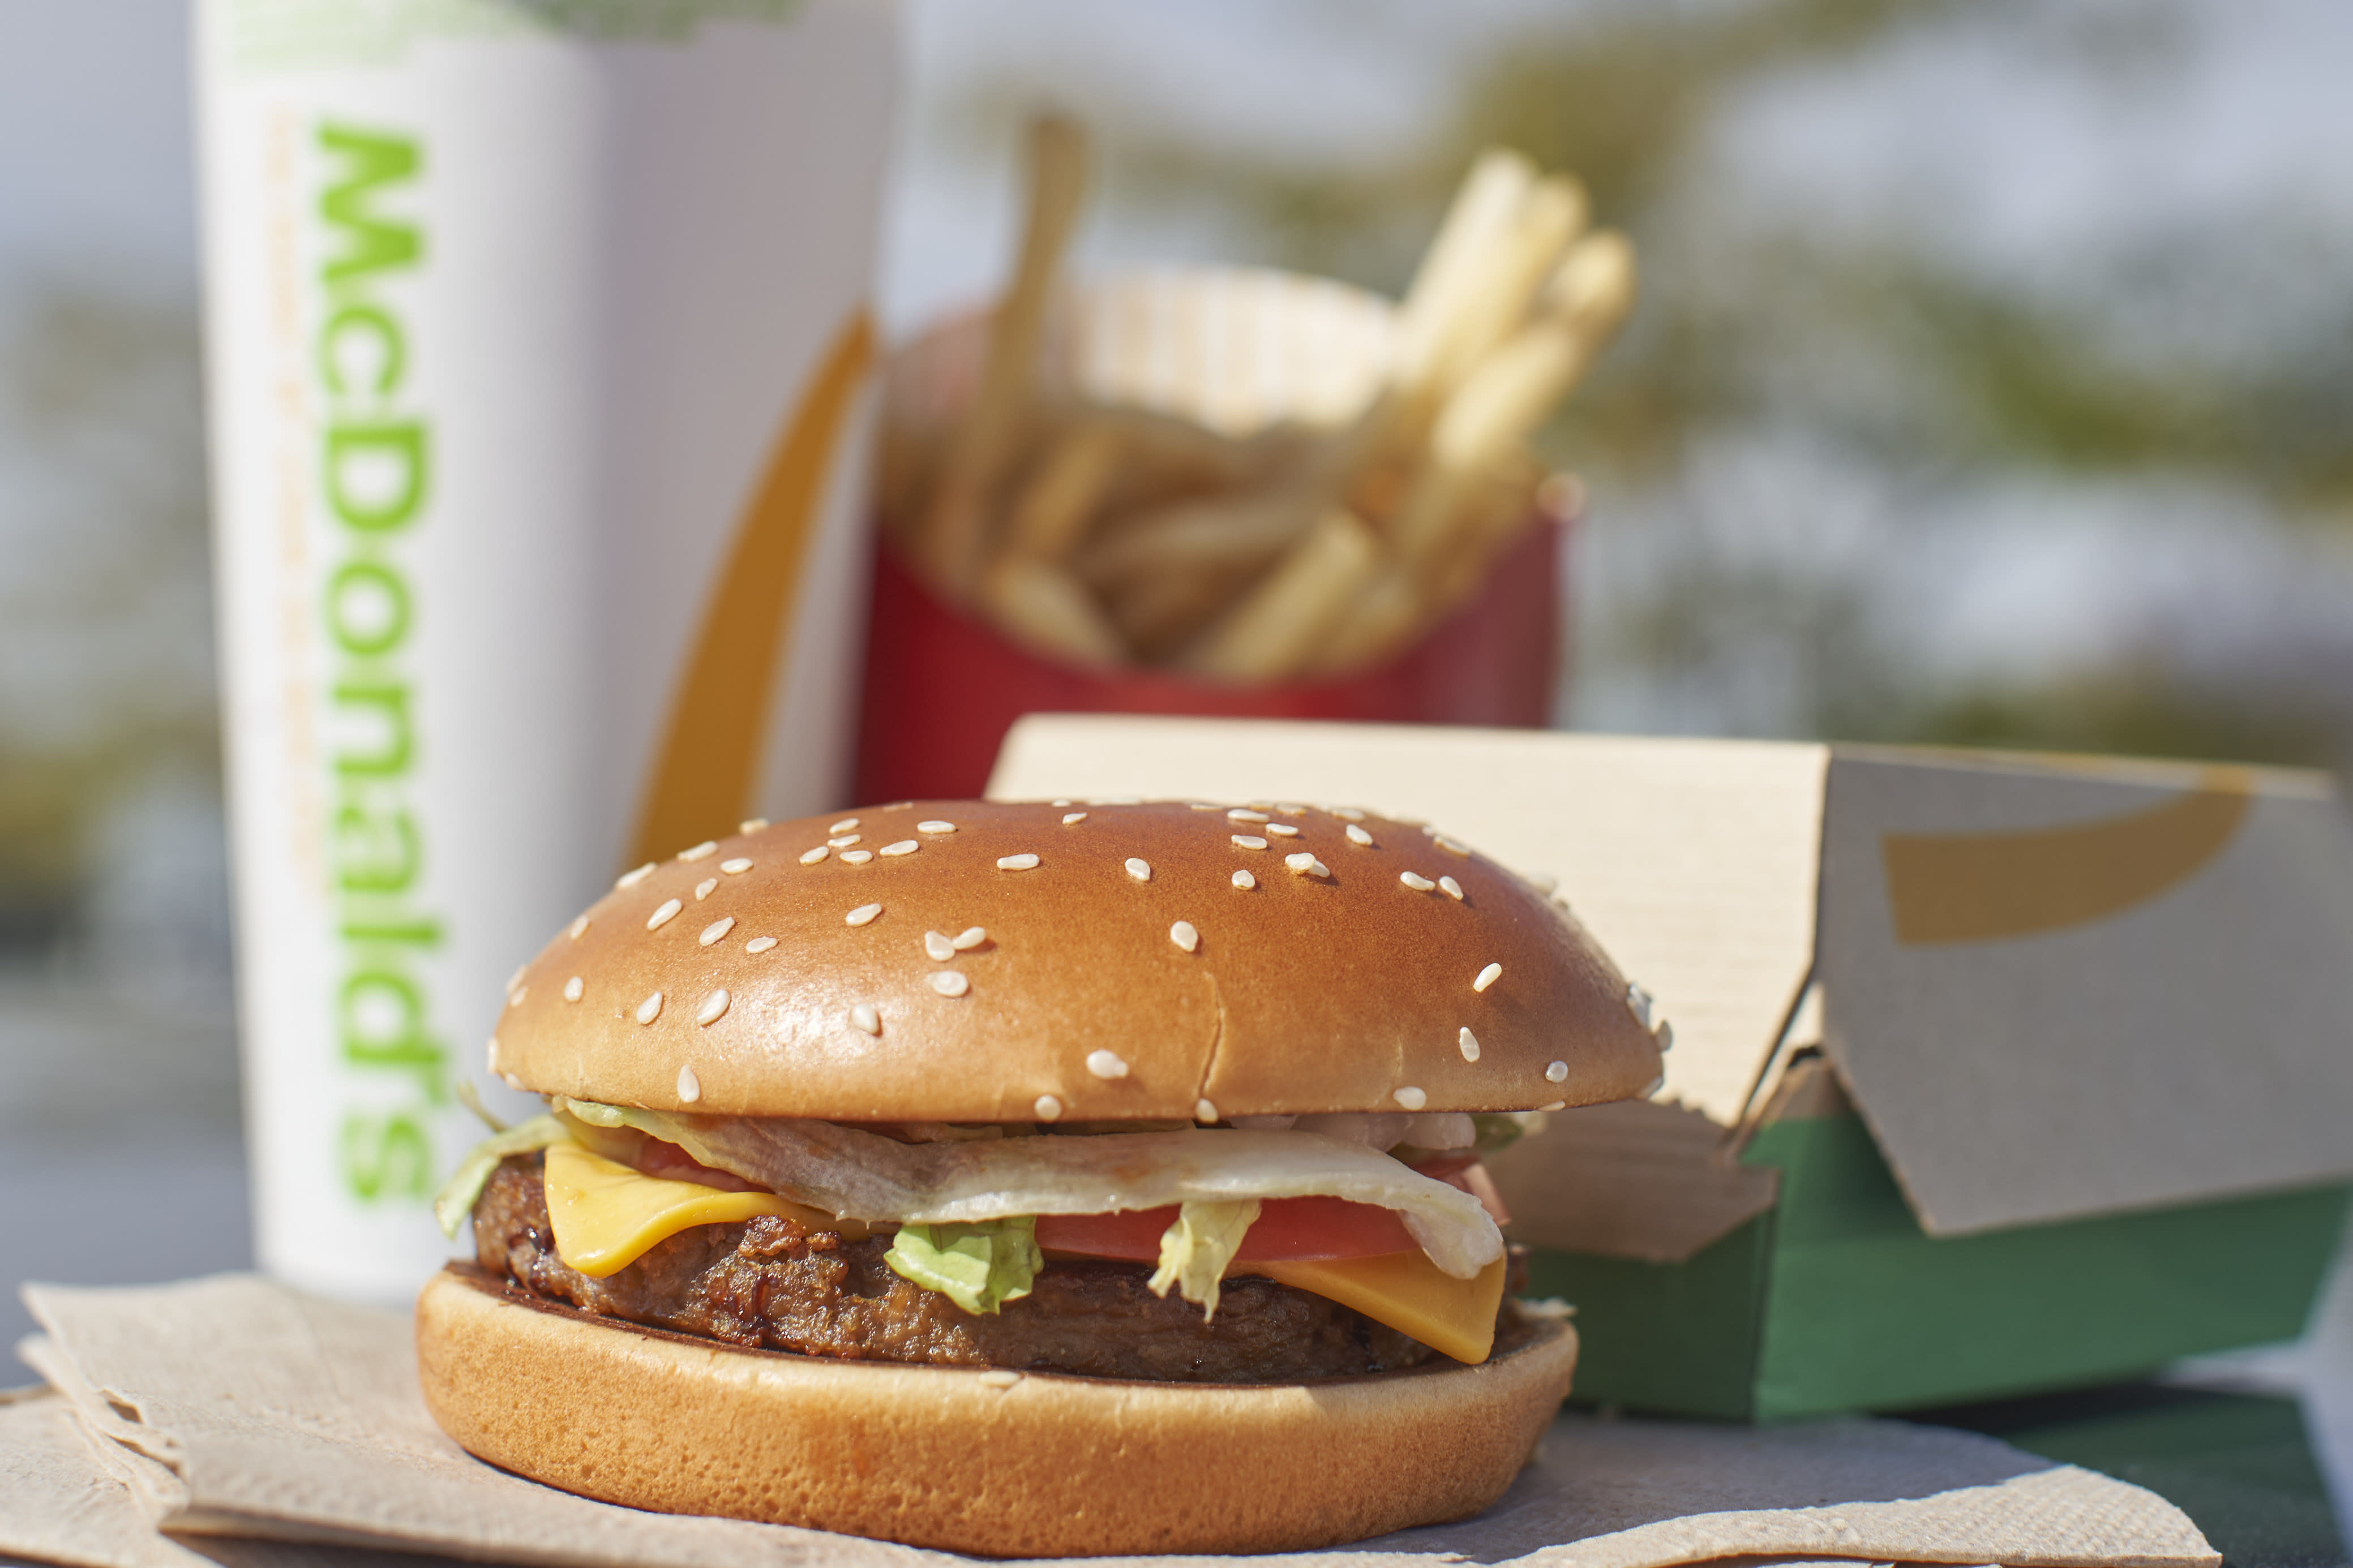 McDonald's could be the key to $1 billion in sales for Beyond Meat, UBS says